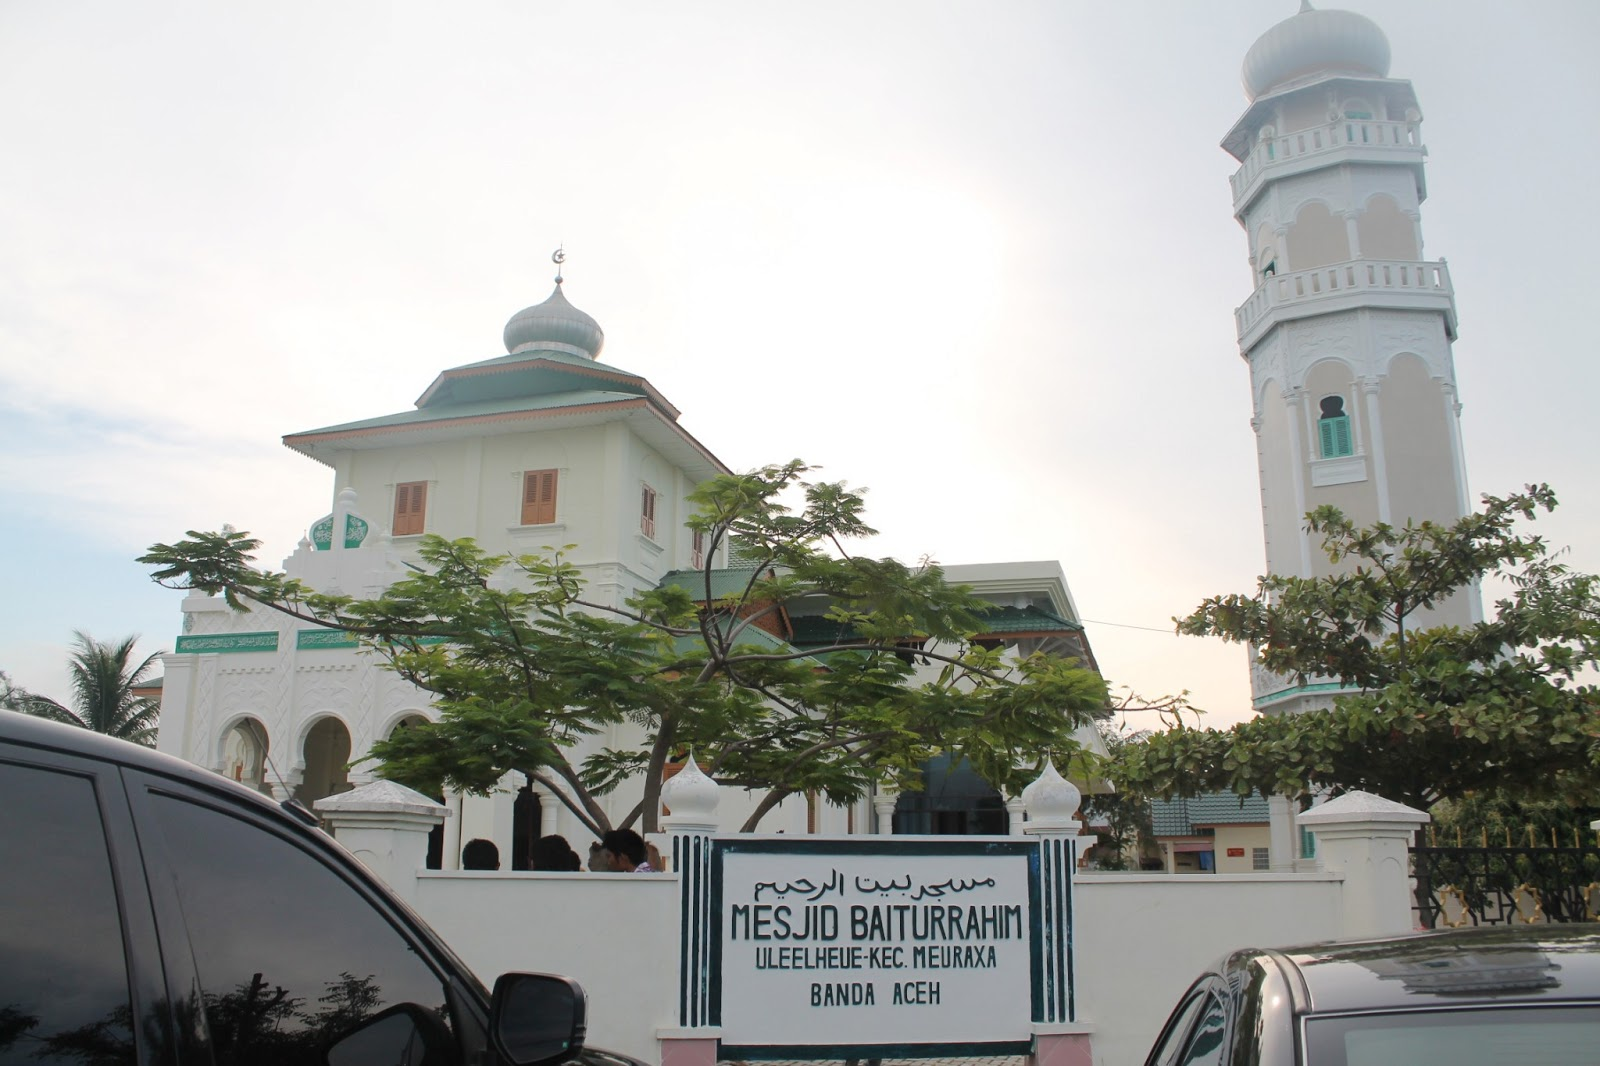 Masjid Baiturrahim Ulee Lheue Hunting Photography Architecture Historic Mosque Aceh